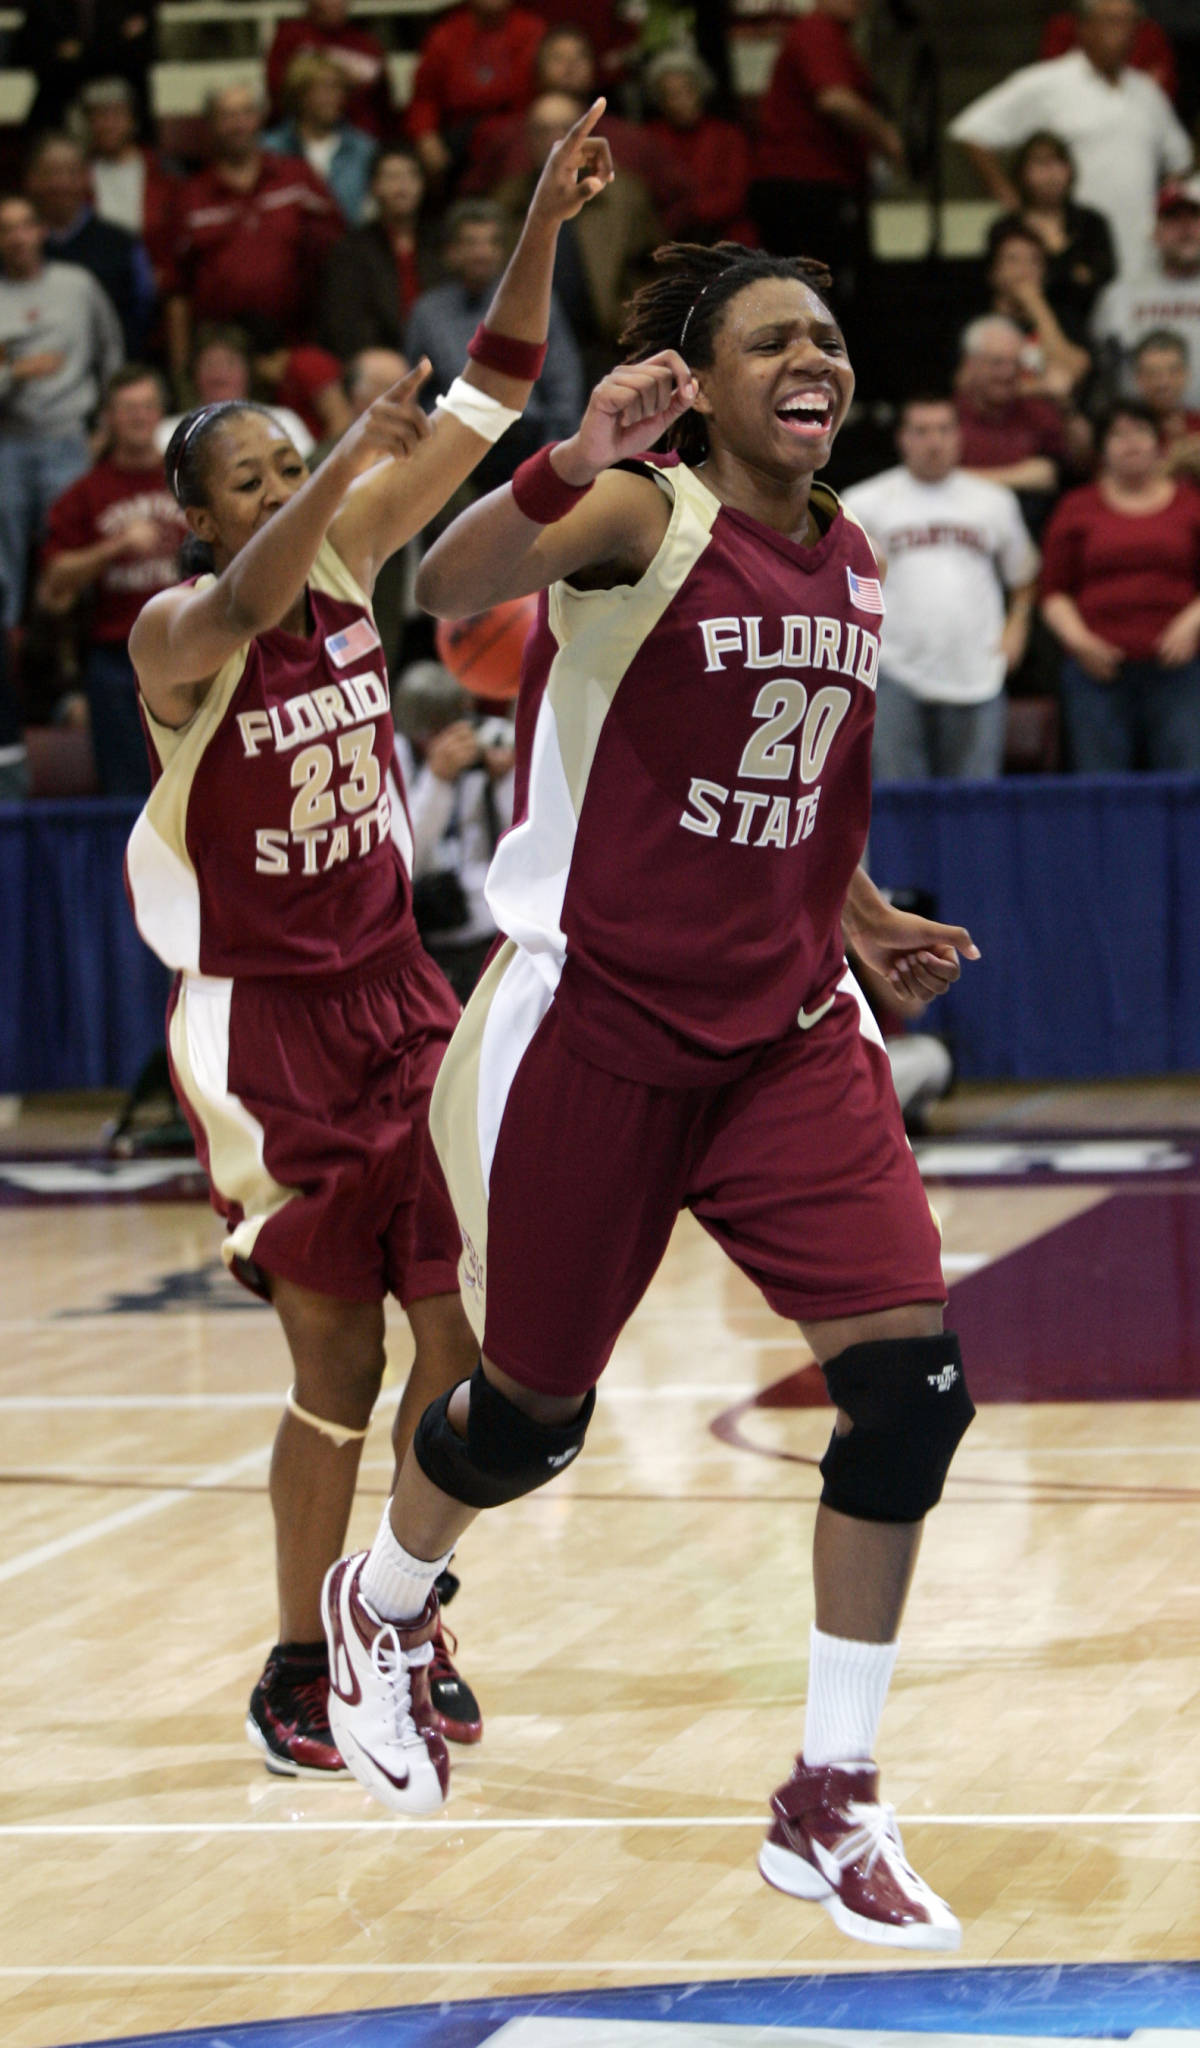 Florida State guard Tanae Davis-Cain (20) and guard Alicia Gladden (23) celebrate after they upset Stanford, 68-61, in a second-round game of the NCAA women's basketball tournament in Stanford, Calif., Monday, March 19, 2007. (AP Photo/Paul Sakuma)